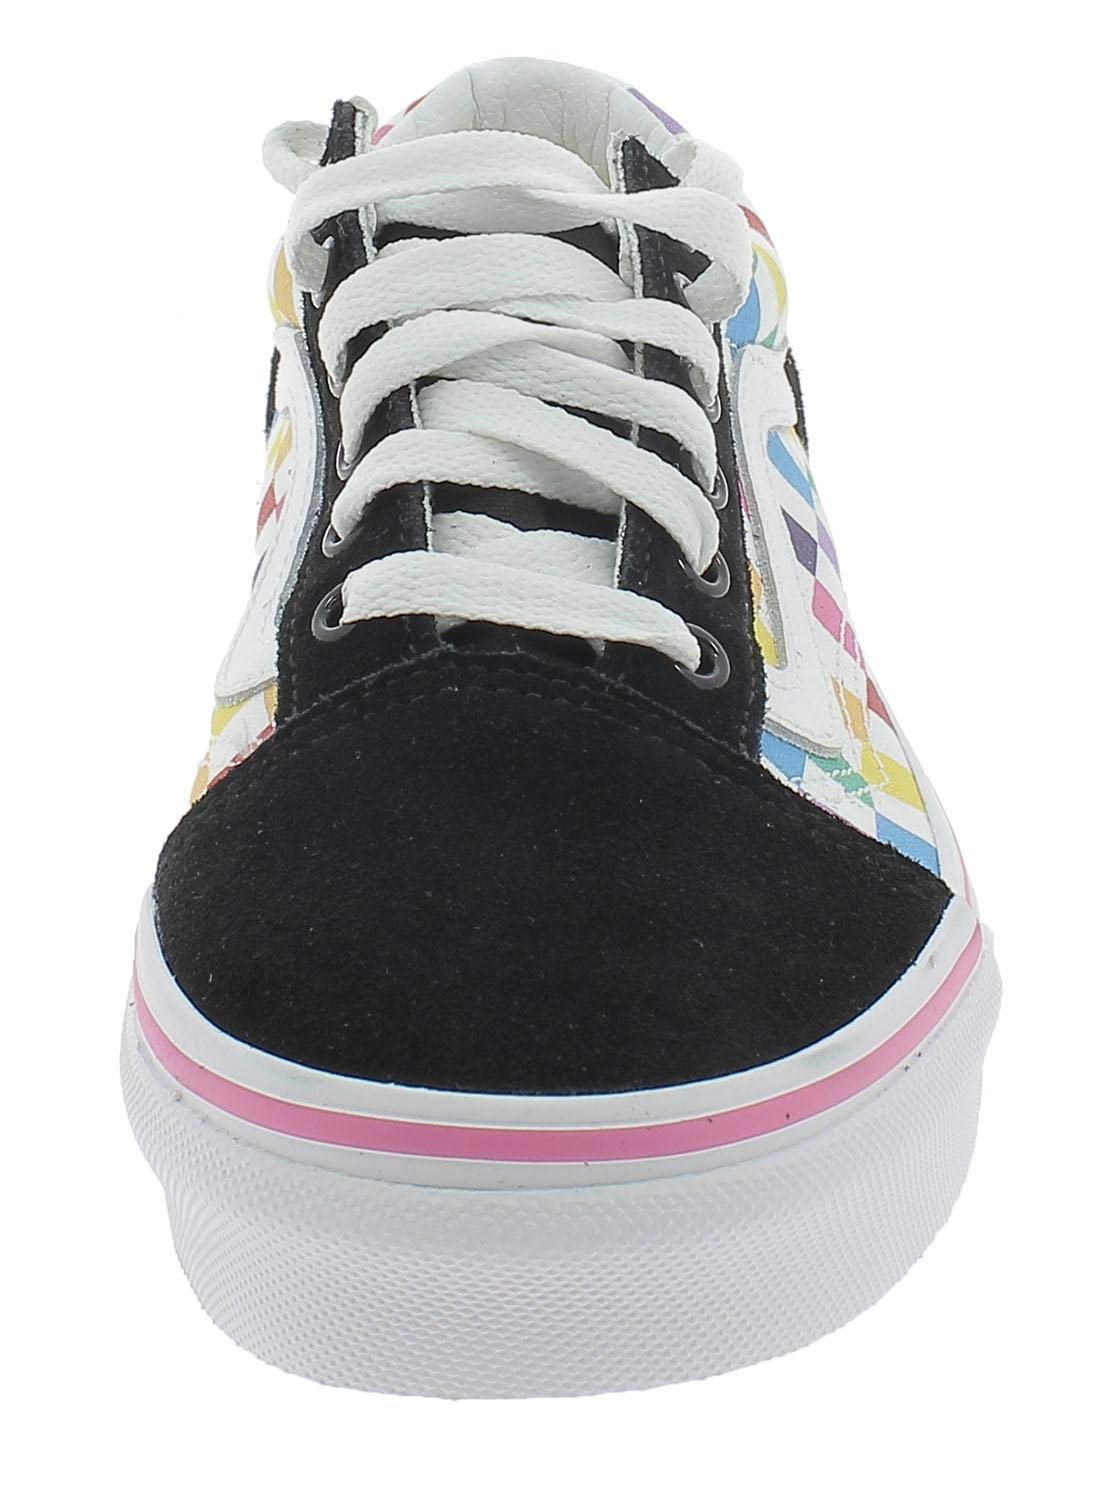 Vans Old Skool Arcoíris, diseño de Cuadros, Color Blanco